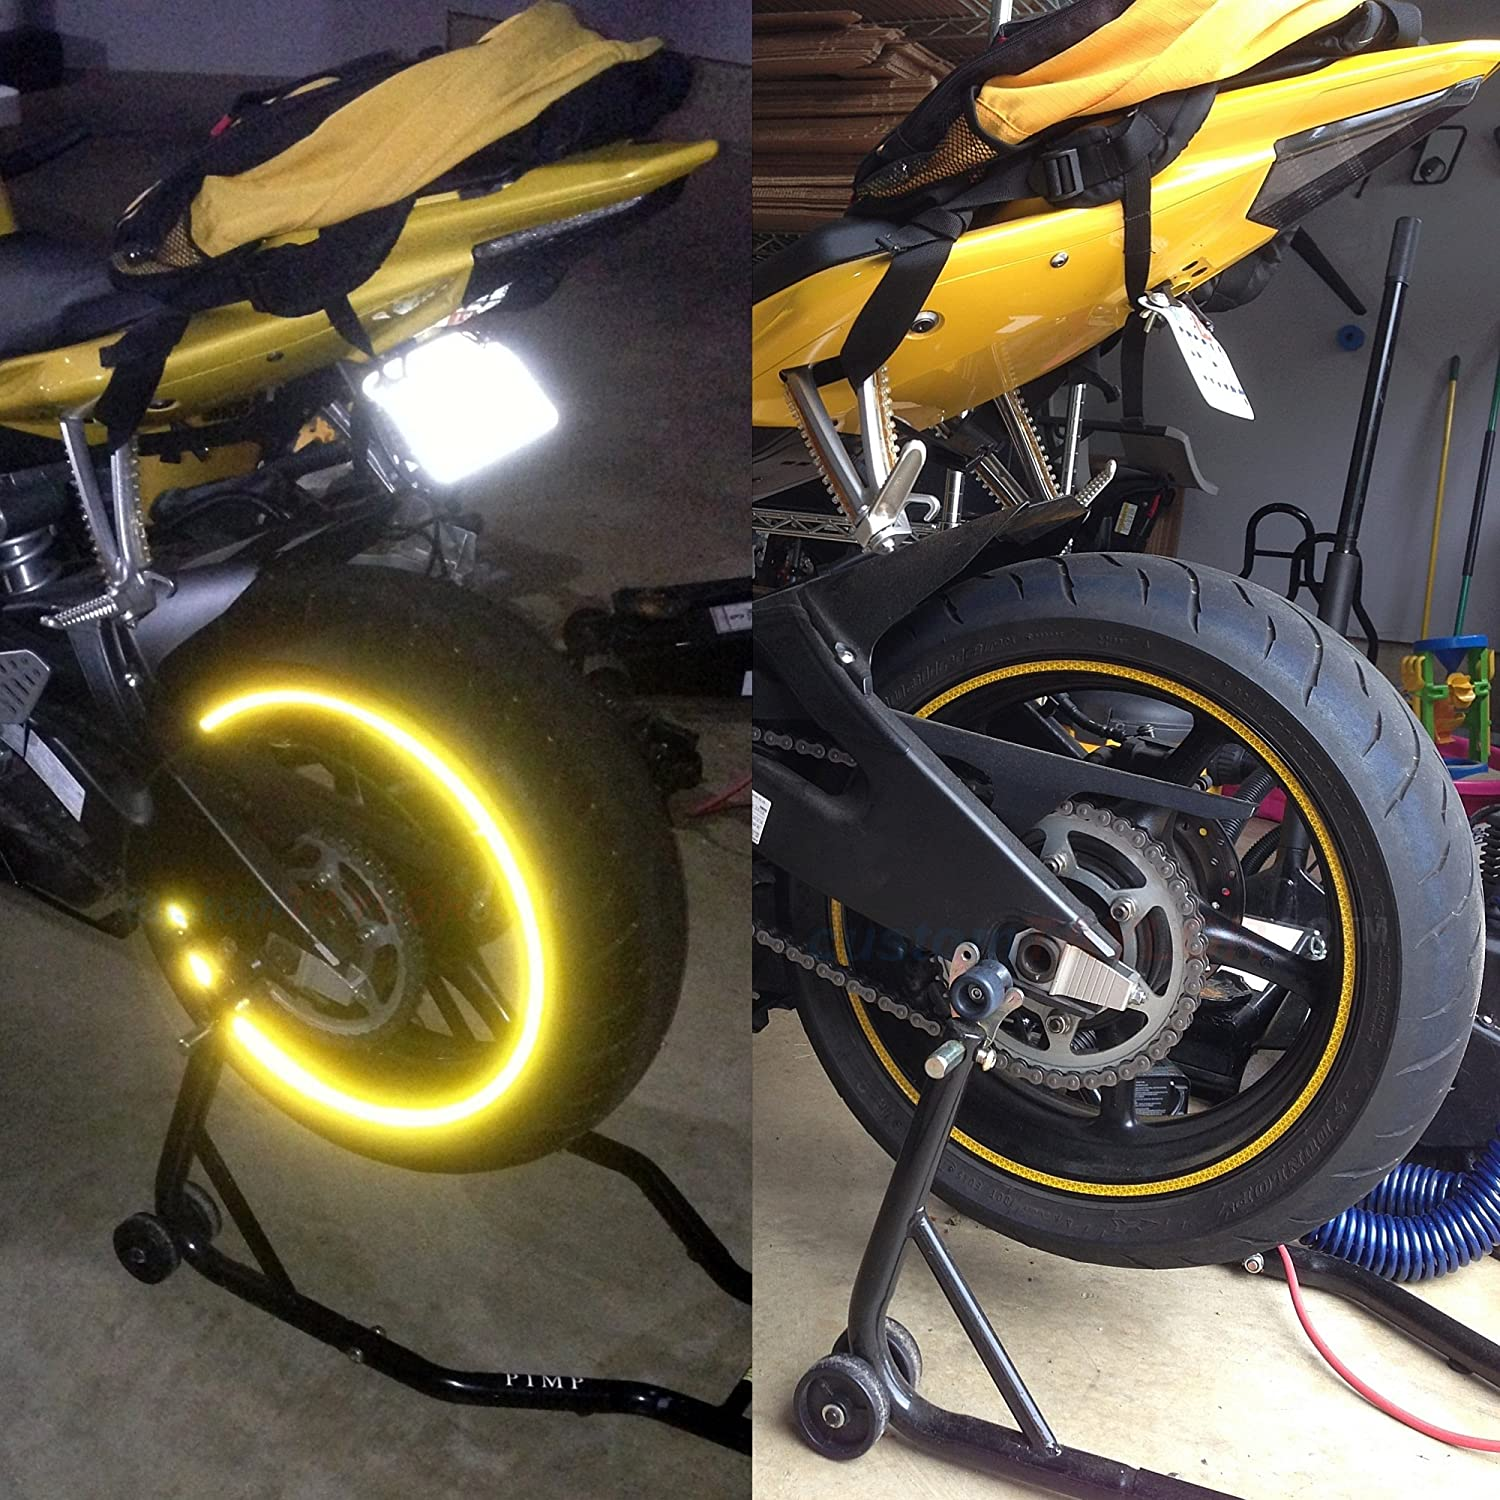 Must Select Your Rim Size Combination Rim Size All Vehicles Yellow//Gold High Intensity Grade Reflective Copyrighted Safety Rim Tapes 15//19 customTAYLOR33